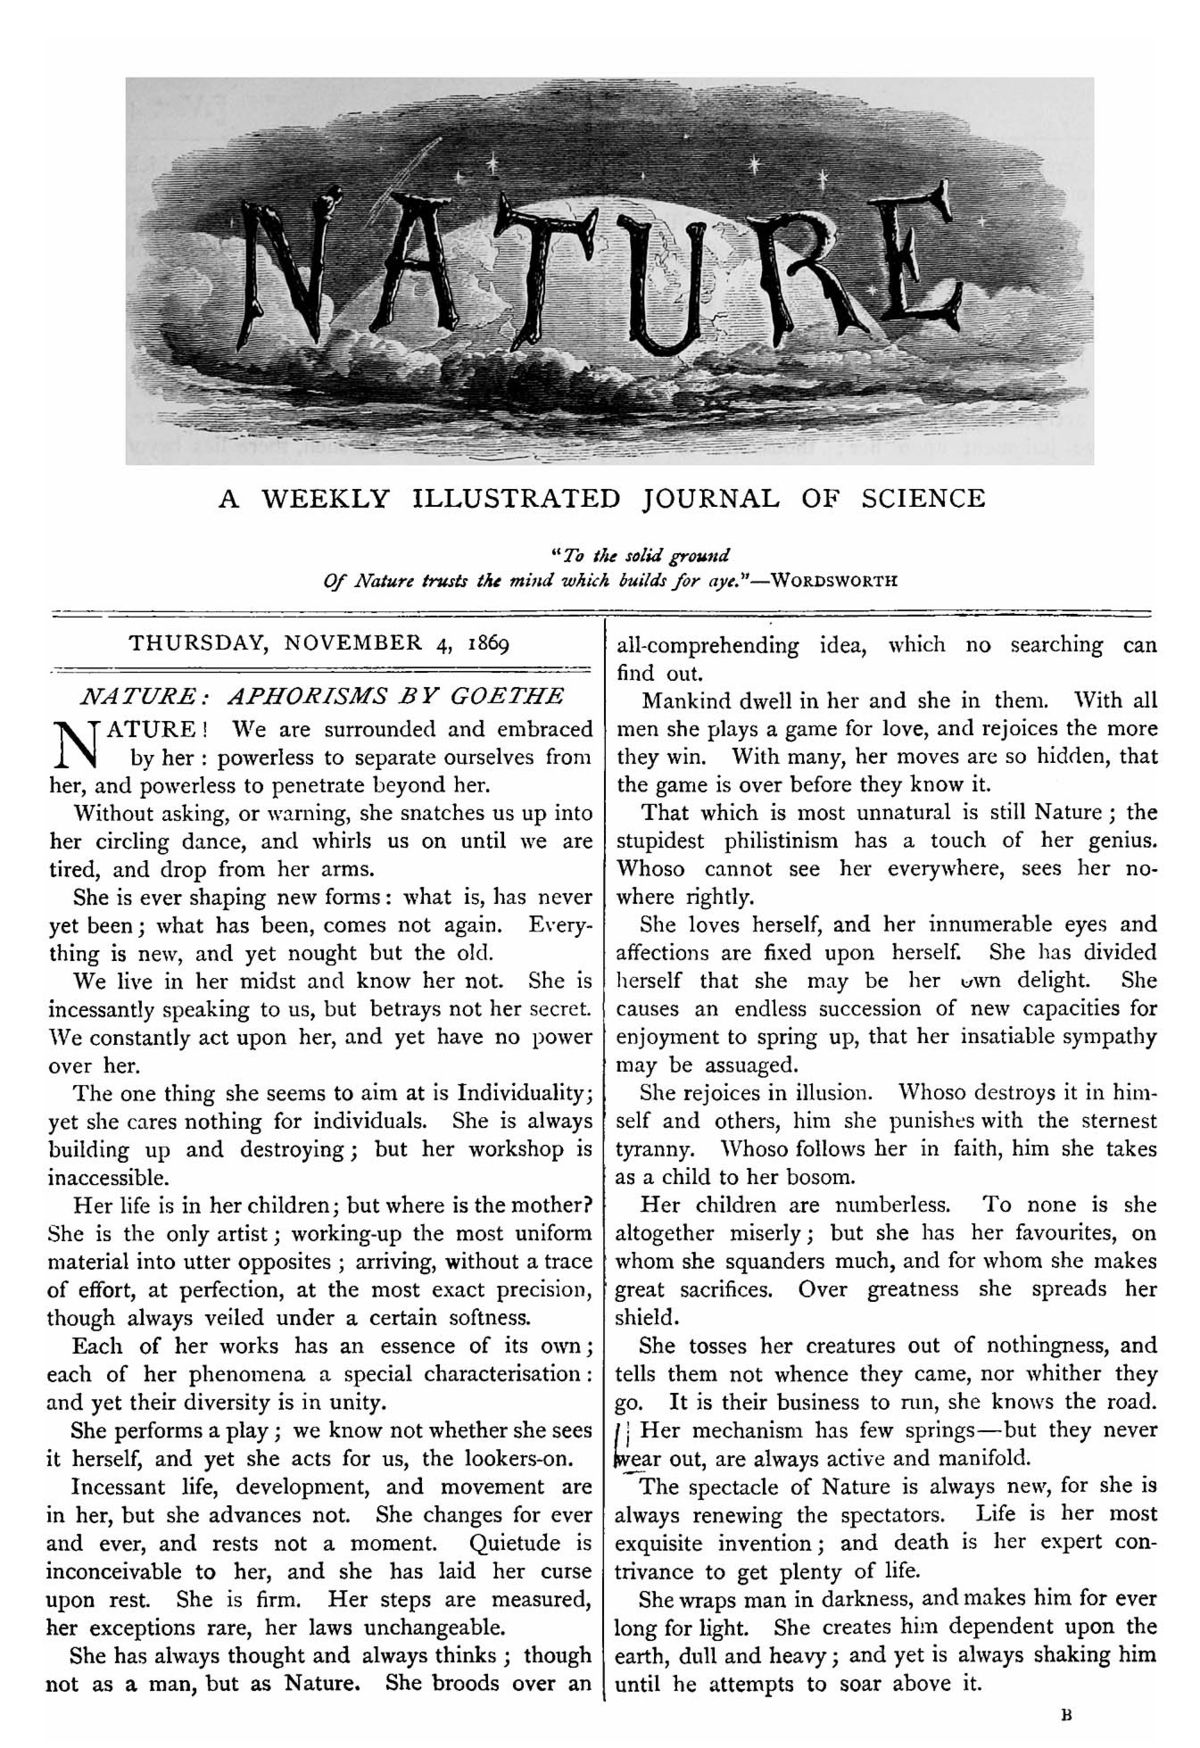 010 Computer Science Researchs Pdf Free Download 1200px Nature Cover2c November 42c 1869 Remarkable Research Papers Full